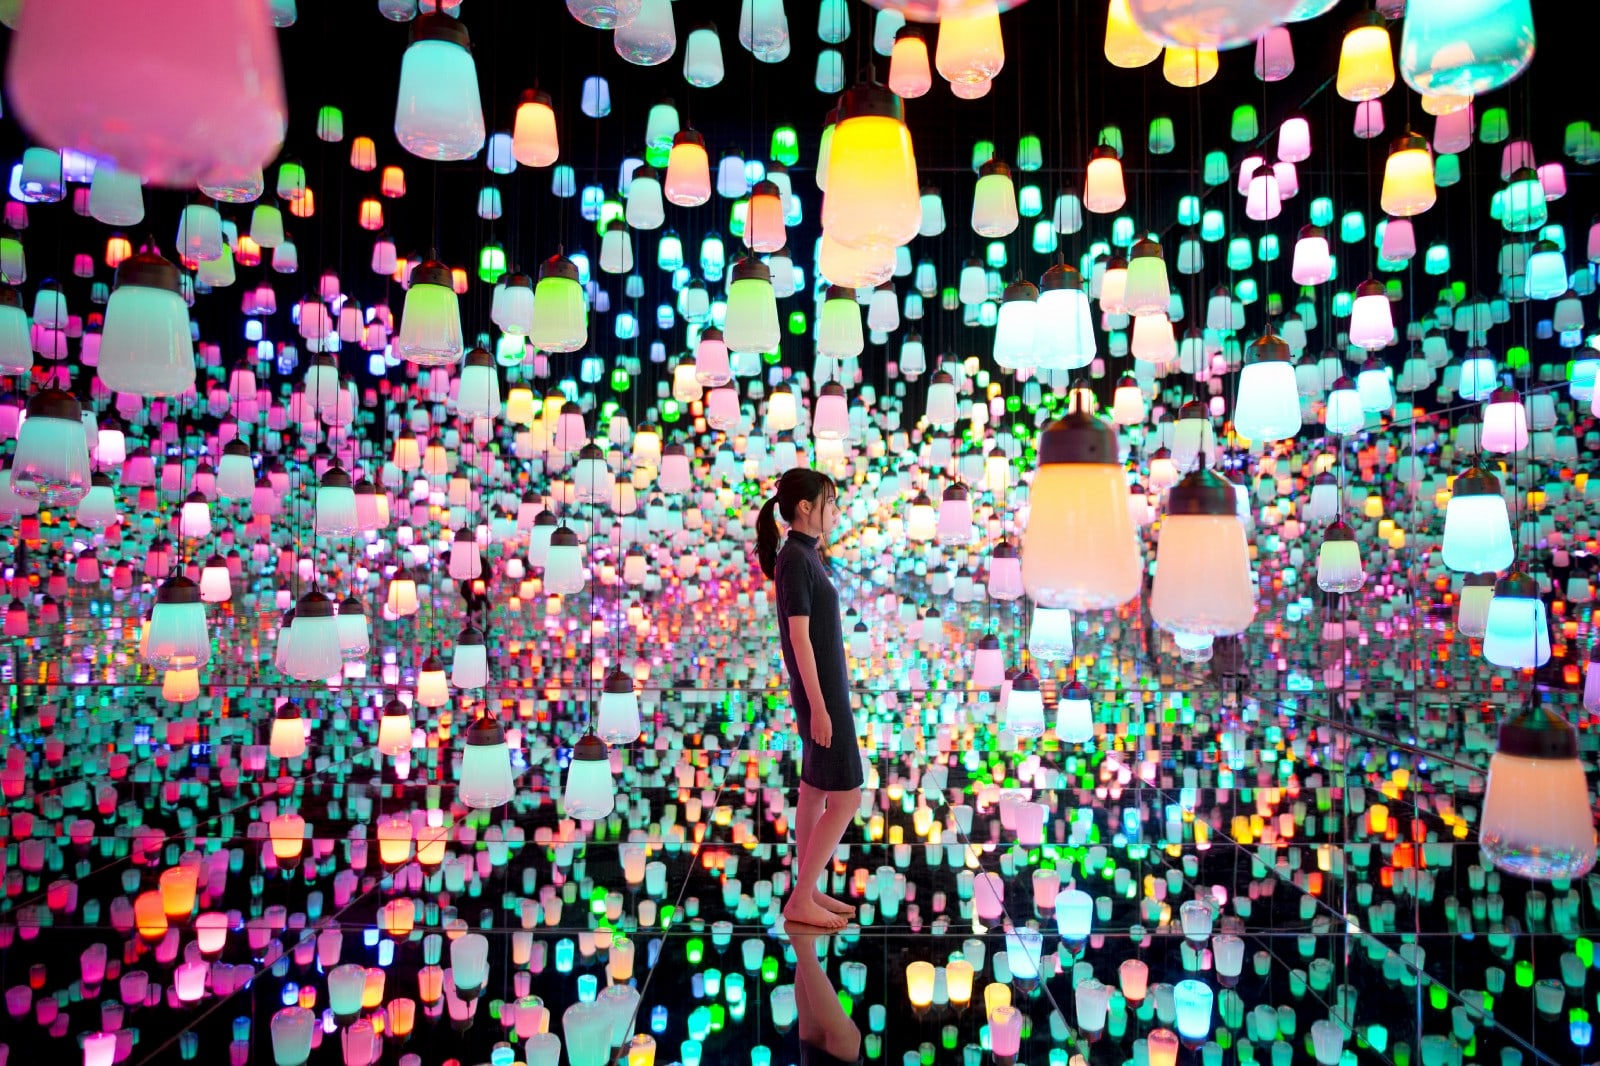 Colorfully lit-up lanterns hung all around the room